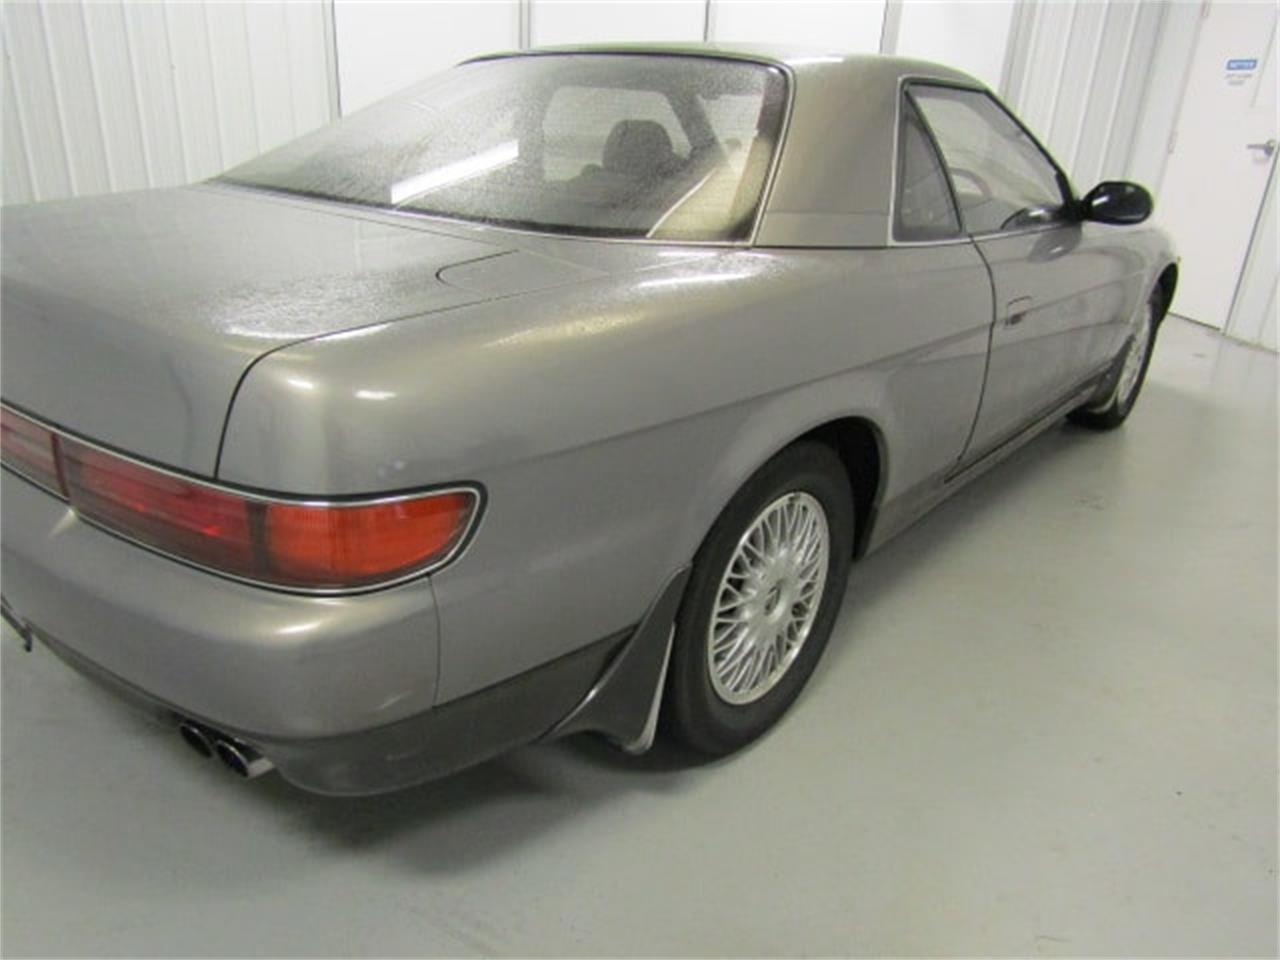 Large Picture of 1992 Eunos Cosmo located in Virginia Offered by Duncan Imports & Classic Cars - LVD1